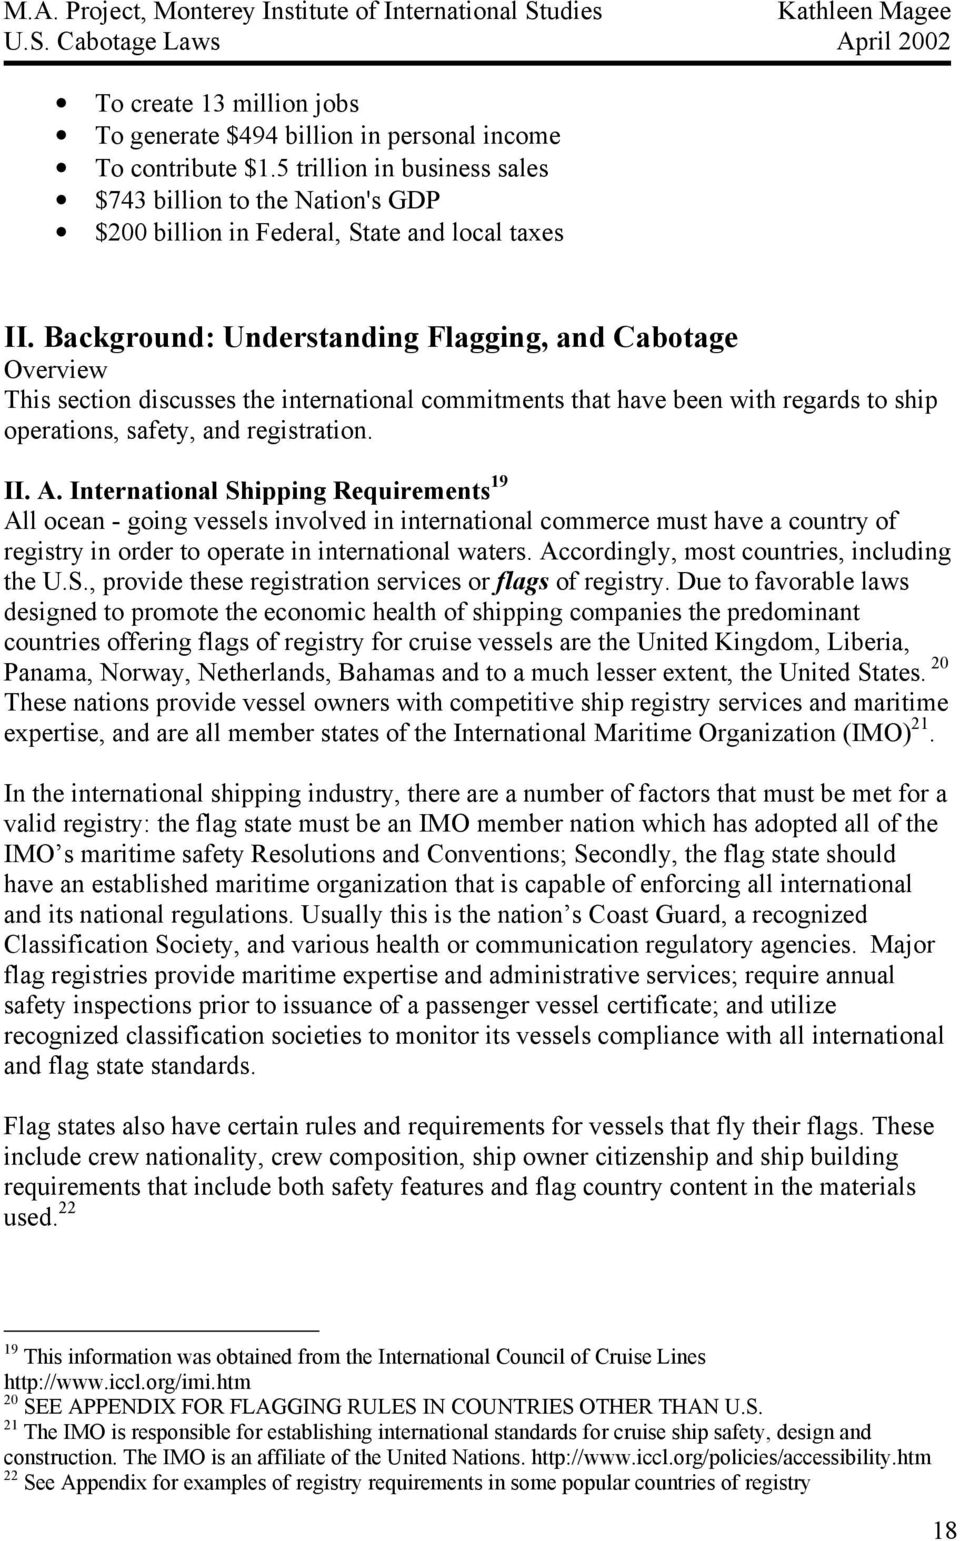 International Shipping Requirements 19 All ocean - going vessels involved in international commerce must have a country of registry in order to operate in international waters.